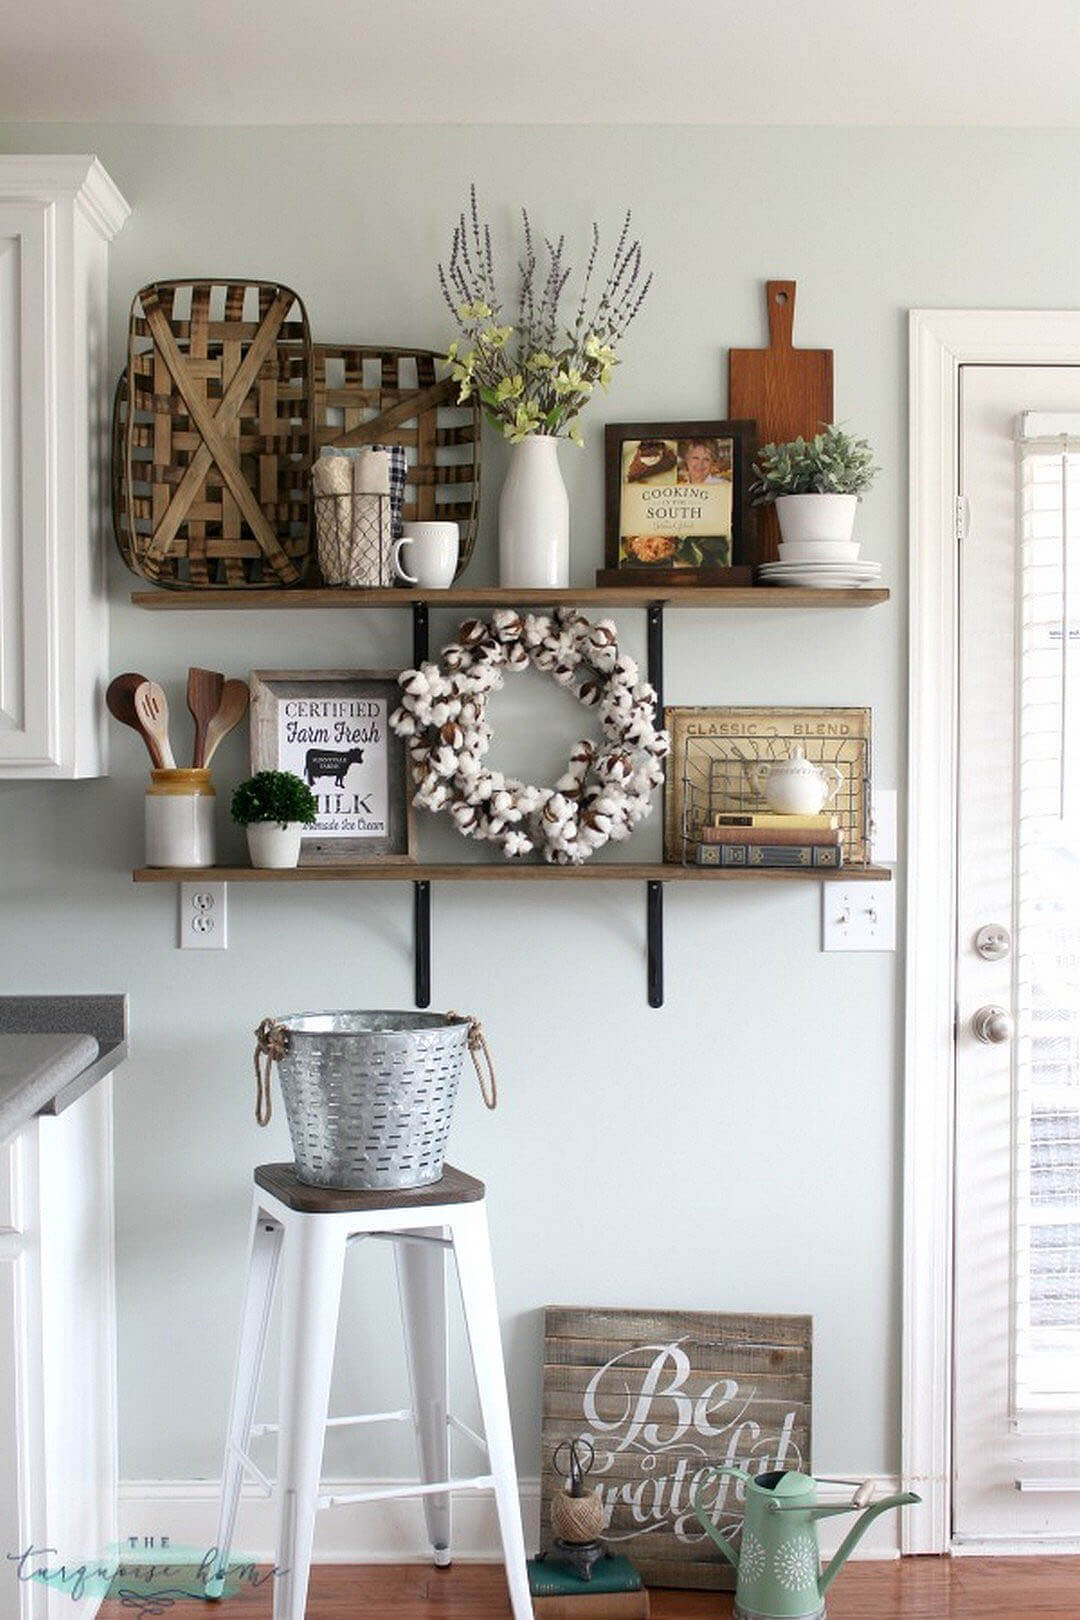 26 Rustic Farmhouse Kitchen Shelf Display